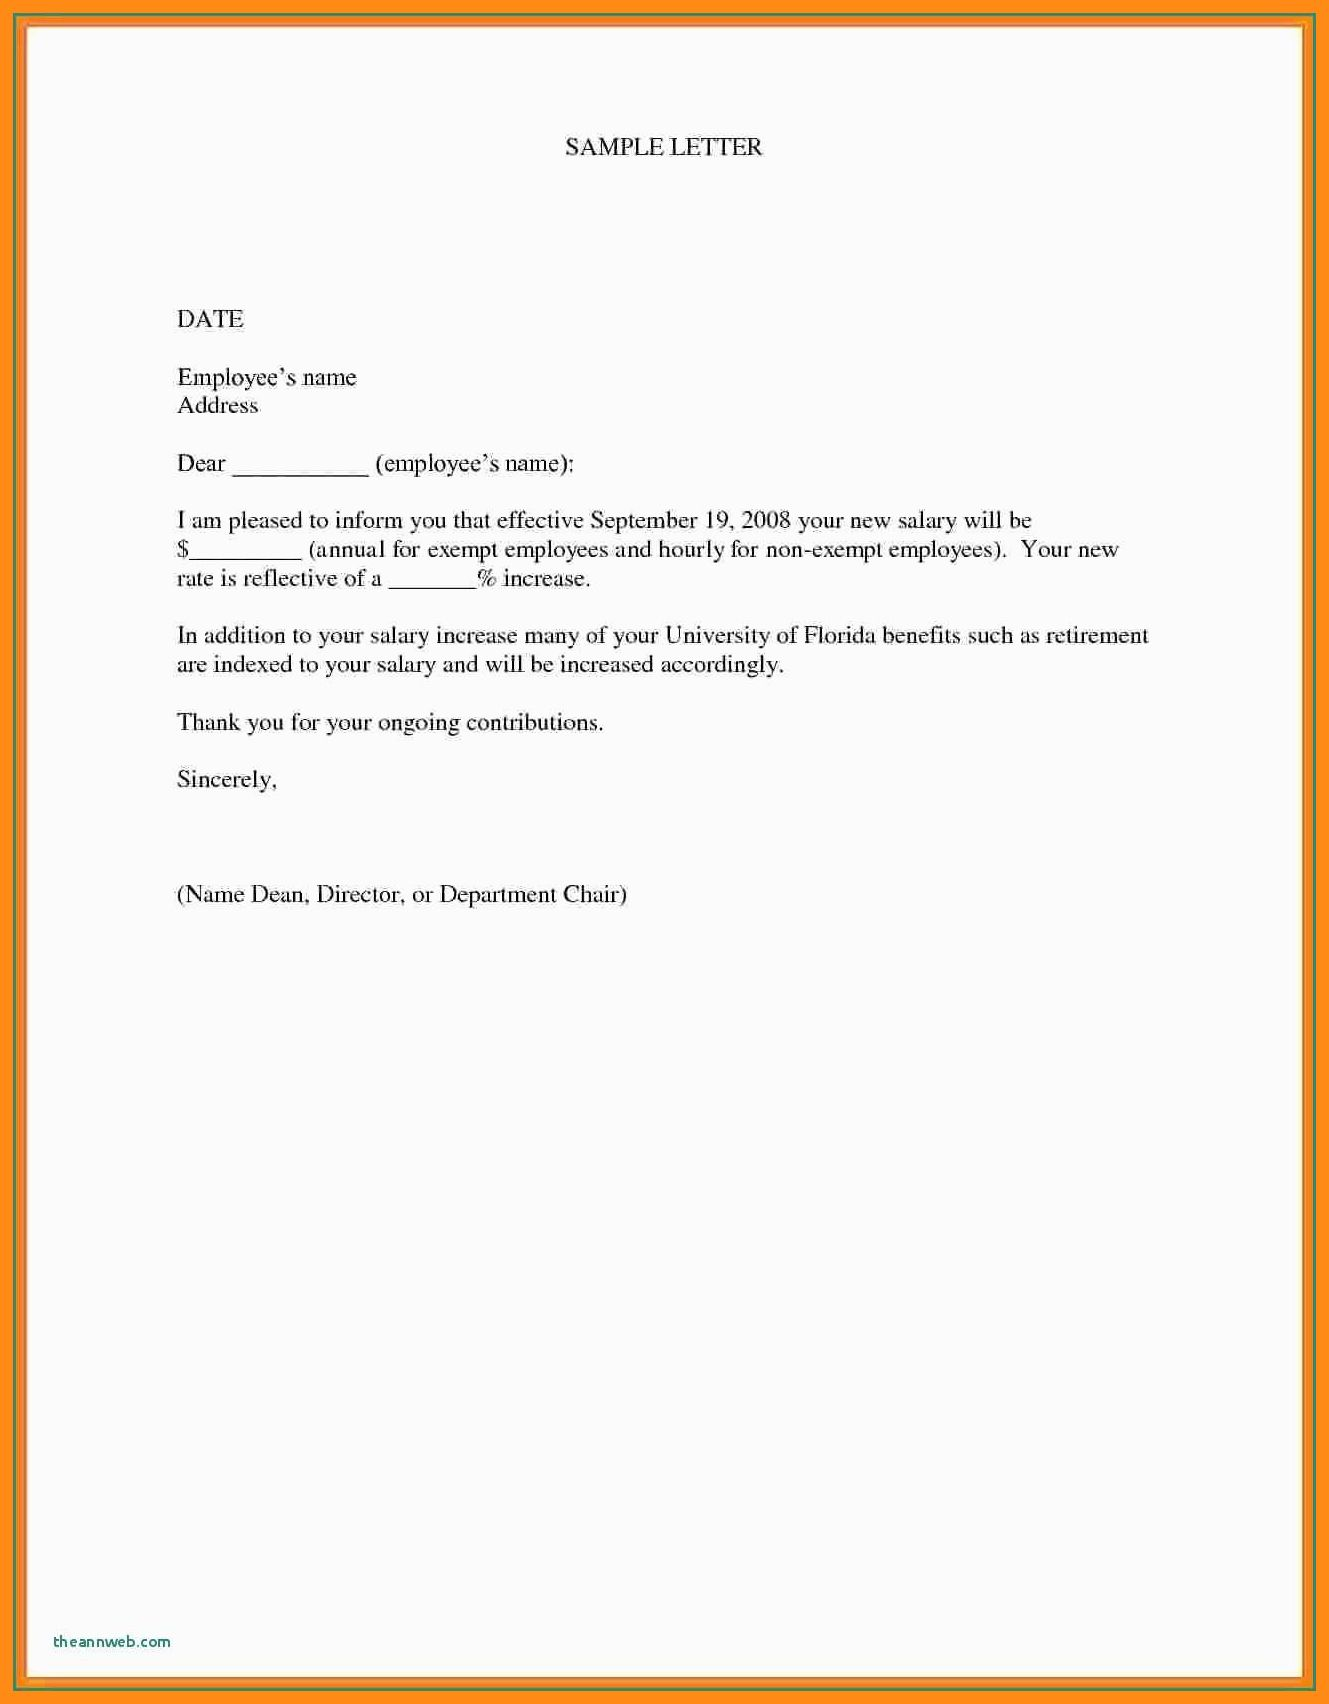 Salary Increase Request Letters Elainegalindo Throughout Request